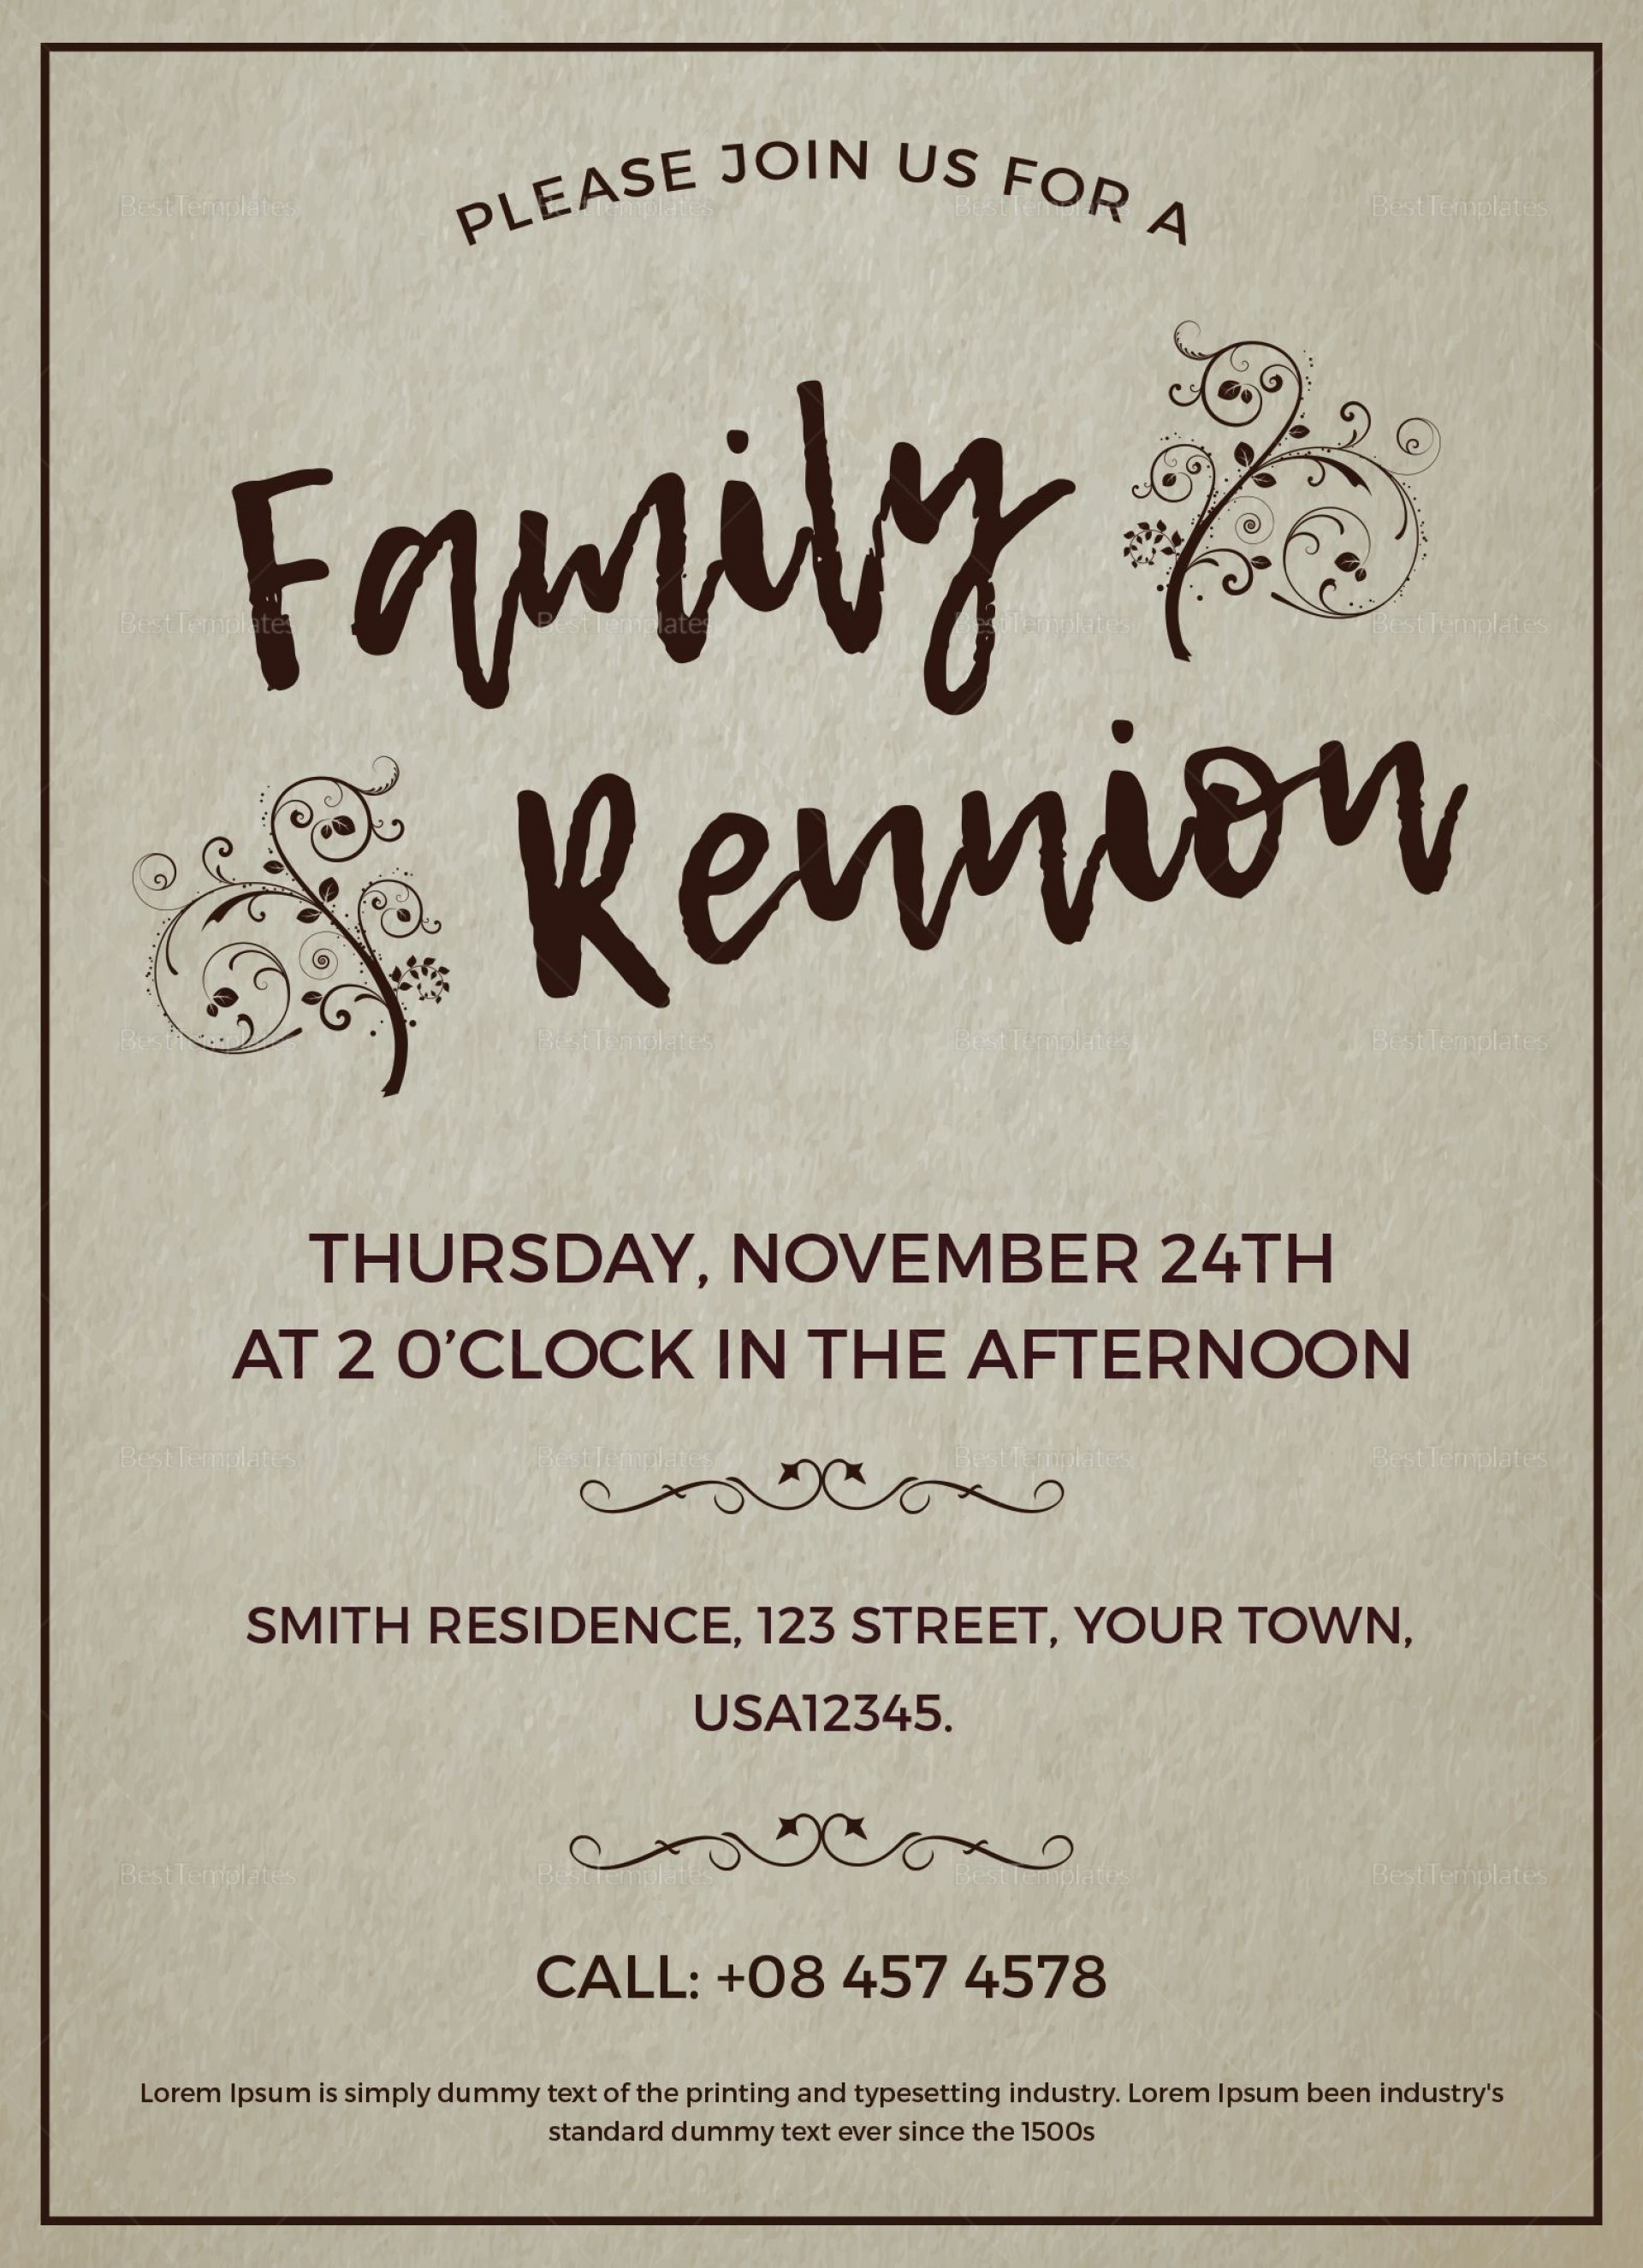 006 Stupendou Family Reunion Invitation Template Free High Def  For Word Online1920